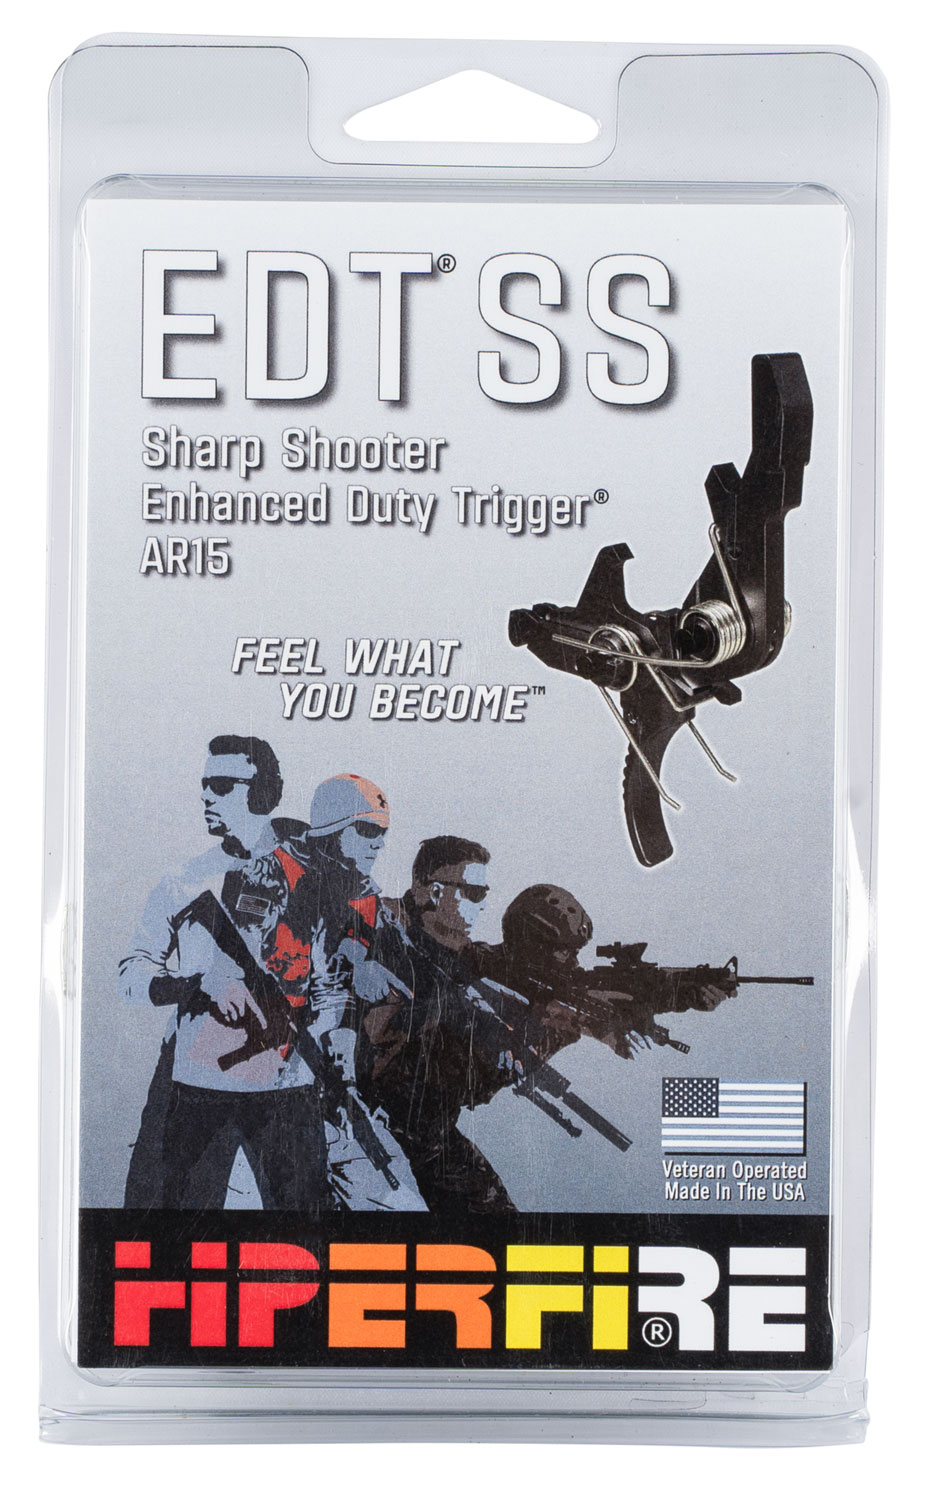 HIPERFIRE EDTSS EDT SHARPSHOOTER AR TRG